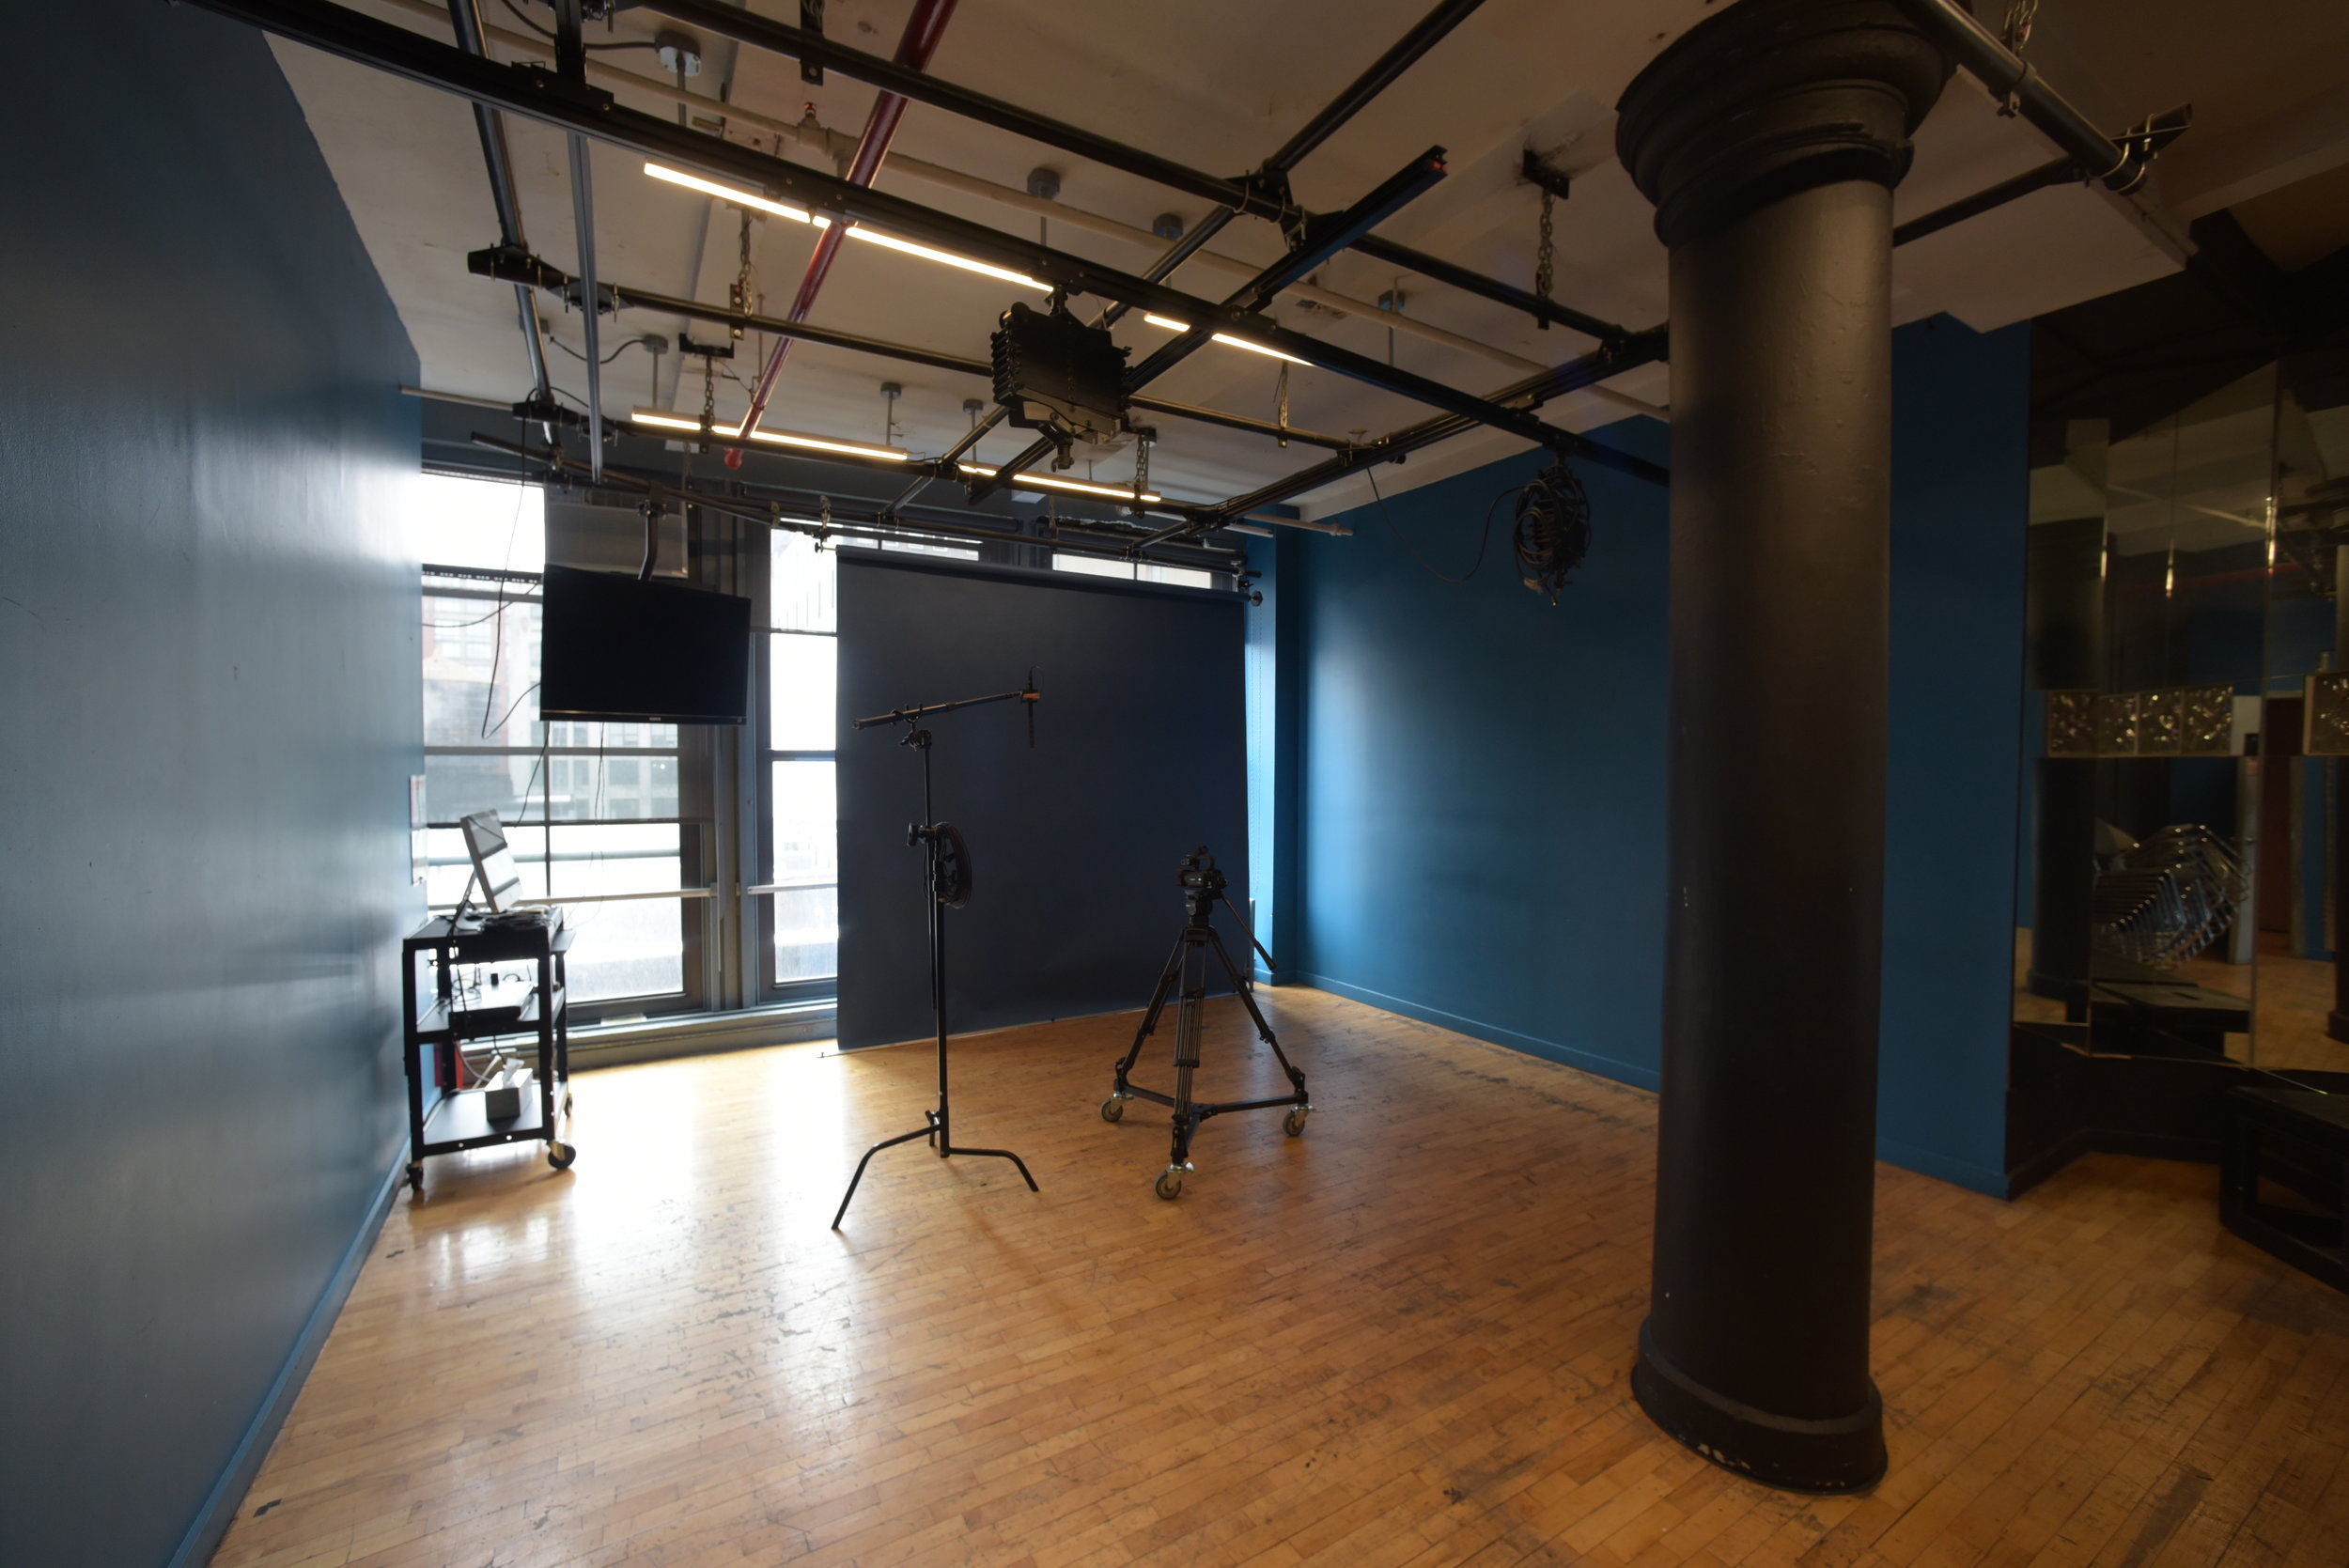 Studio 8-C. Studio 8-C is a casting room and photo studio containing a light grid, 9 ft. background papers on rollers.